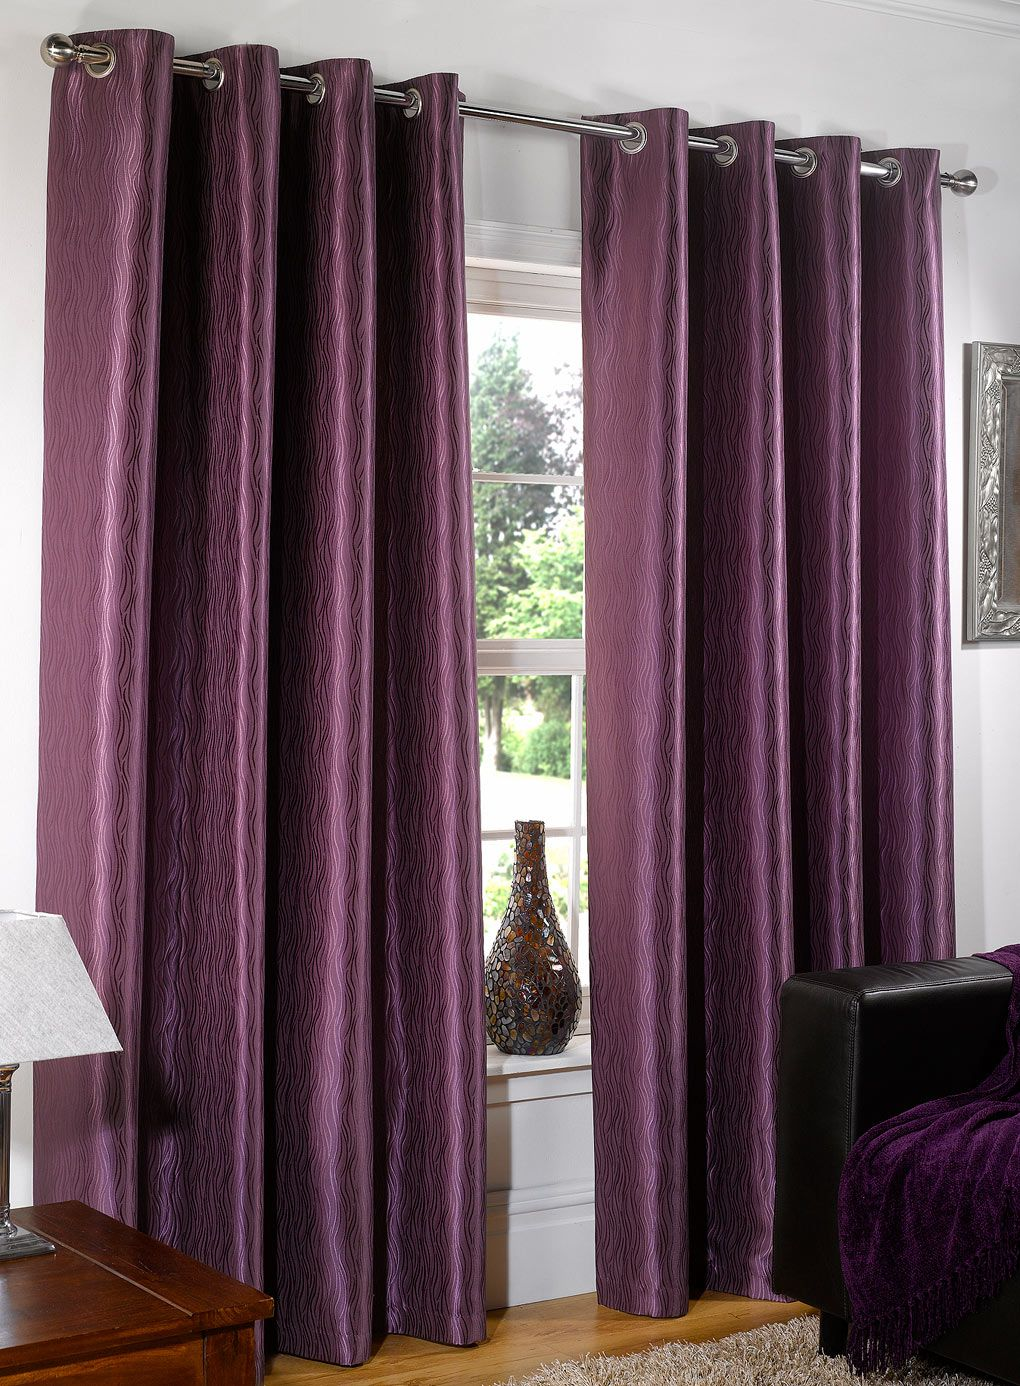 Wonderful Purple Bedroom Curtain Ideas Part - 13: 15 Beautiful Bedroom Designs With Purple Curtain : Gorgeous Purple Bedroom  Curtain In Awesome Bedroom Decor With White Shade Table Lamp And Black  Leather ...